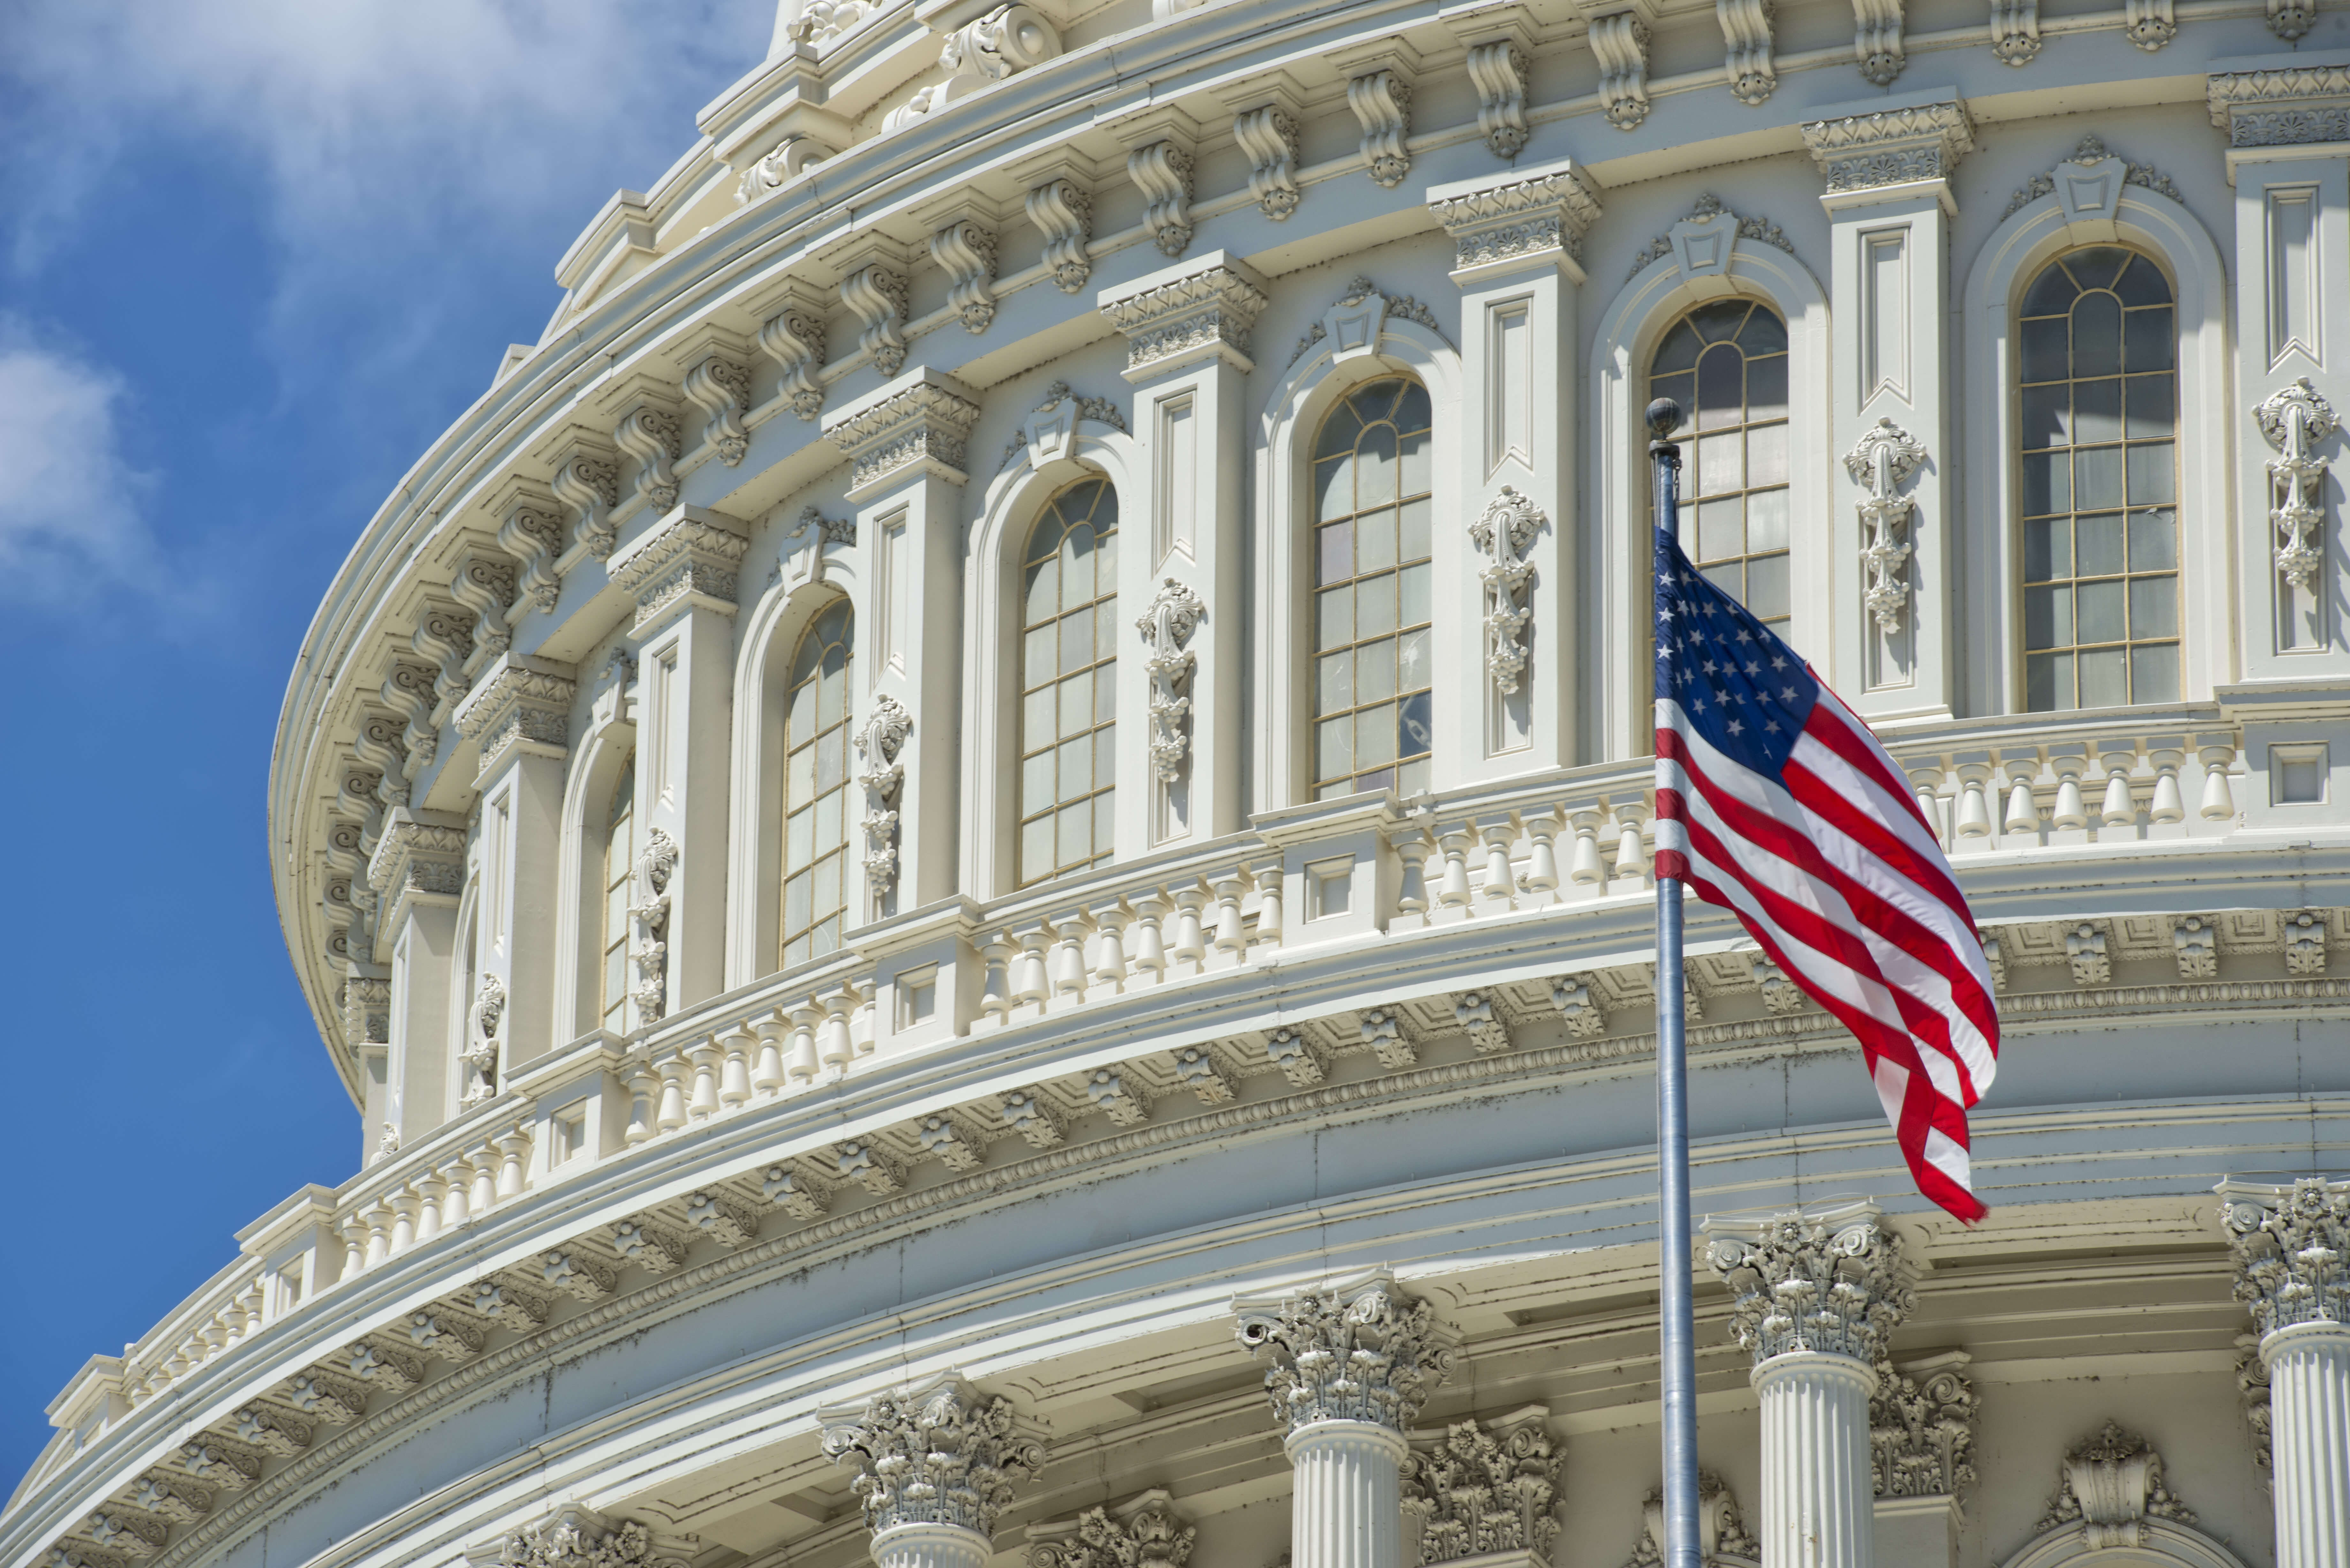 a close up image of an ornately sculpted white building against a blue sky with a flagpole in front of it flying the American flag